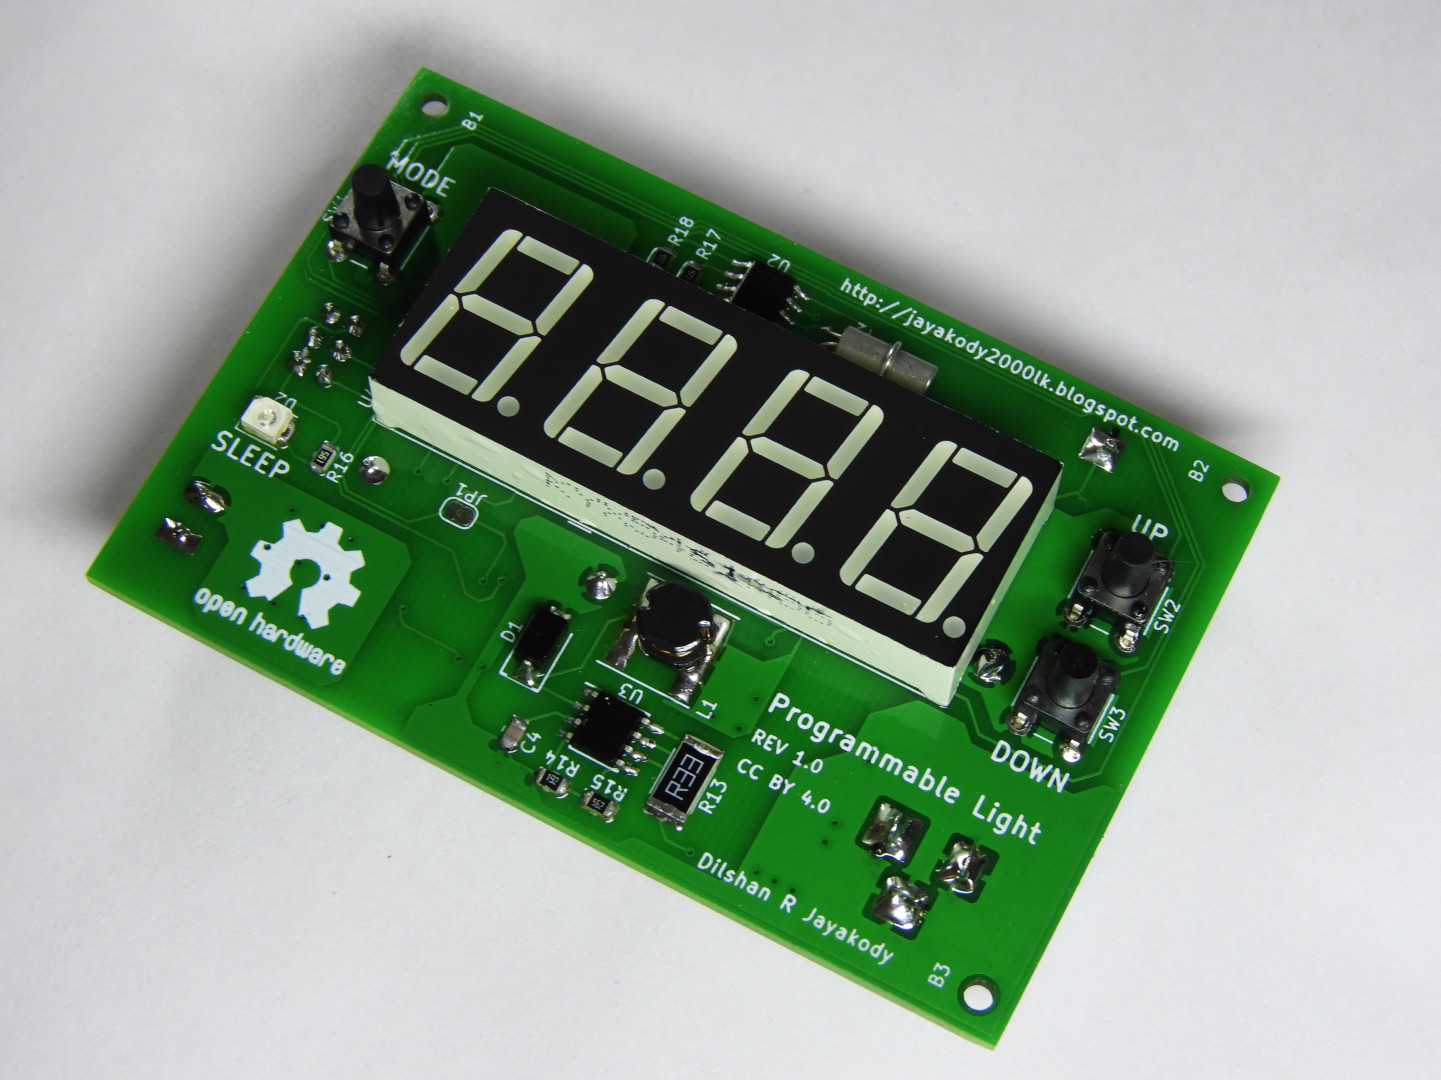 Programmable light controller with ATmega8 and DS1307